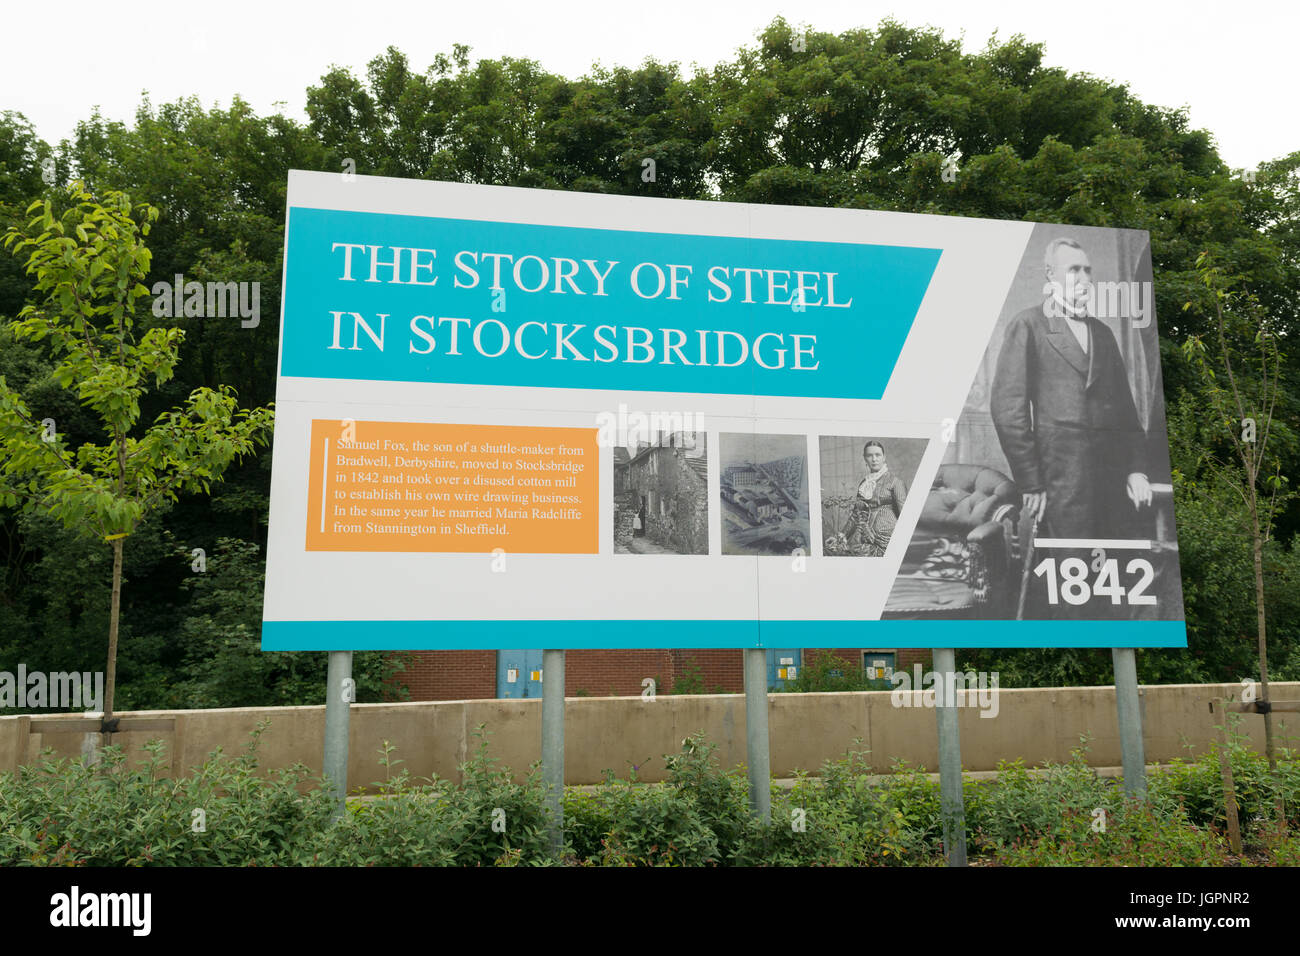 Stocksbridge, Sheffield - The Story of Steel in Stocksbridge - part of a series of information boards at Fox Valley - Stock Image